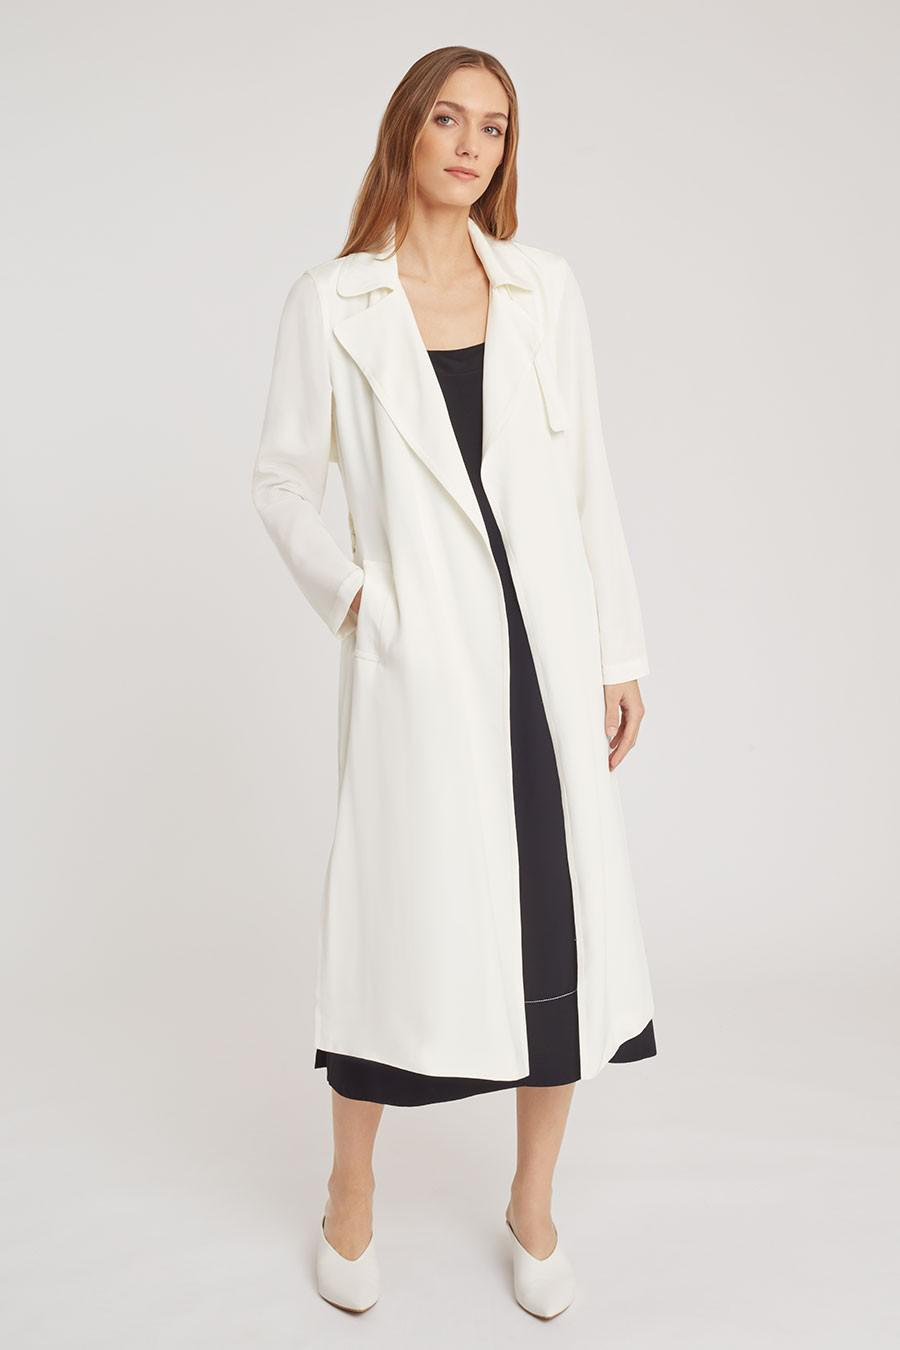 Women's Silk Classic Trench in White | Size: 1